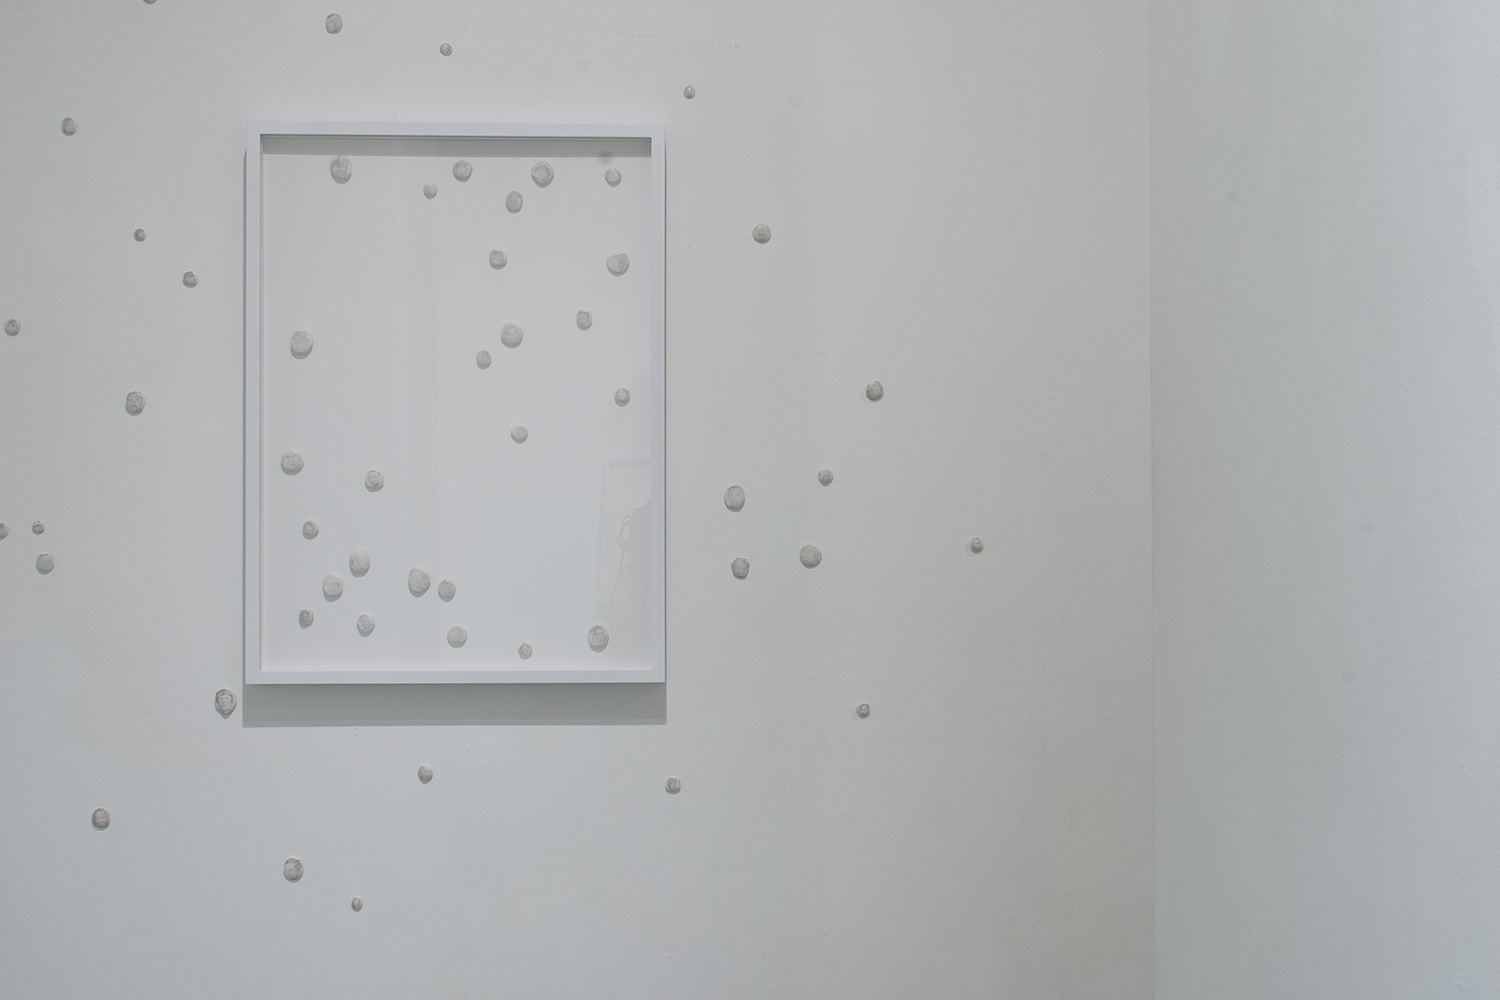 cosmos ︱ frame,  white tac, ink transferred from news print ︱dimensions variable